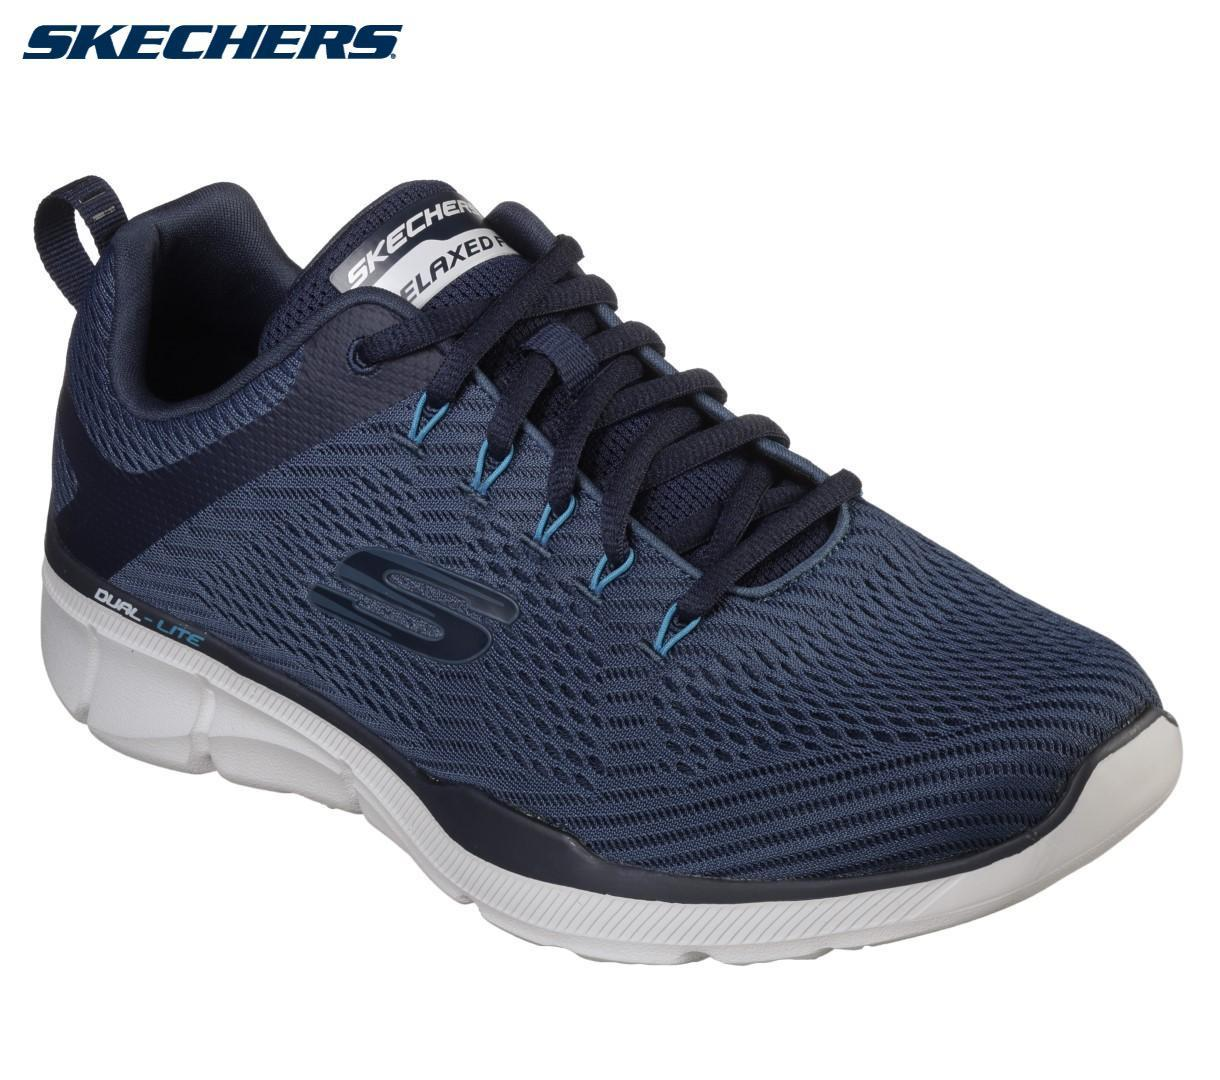 4622ebf7a10 Skechers Navy Relaxed Fit Equalizer 3.0 Sneakers For Men - 52927-NVY